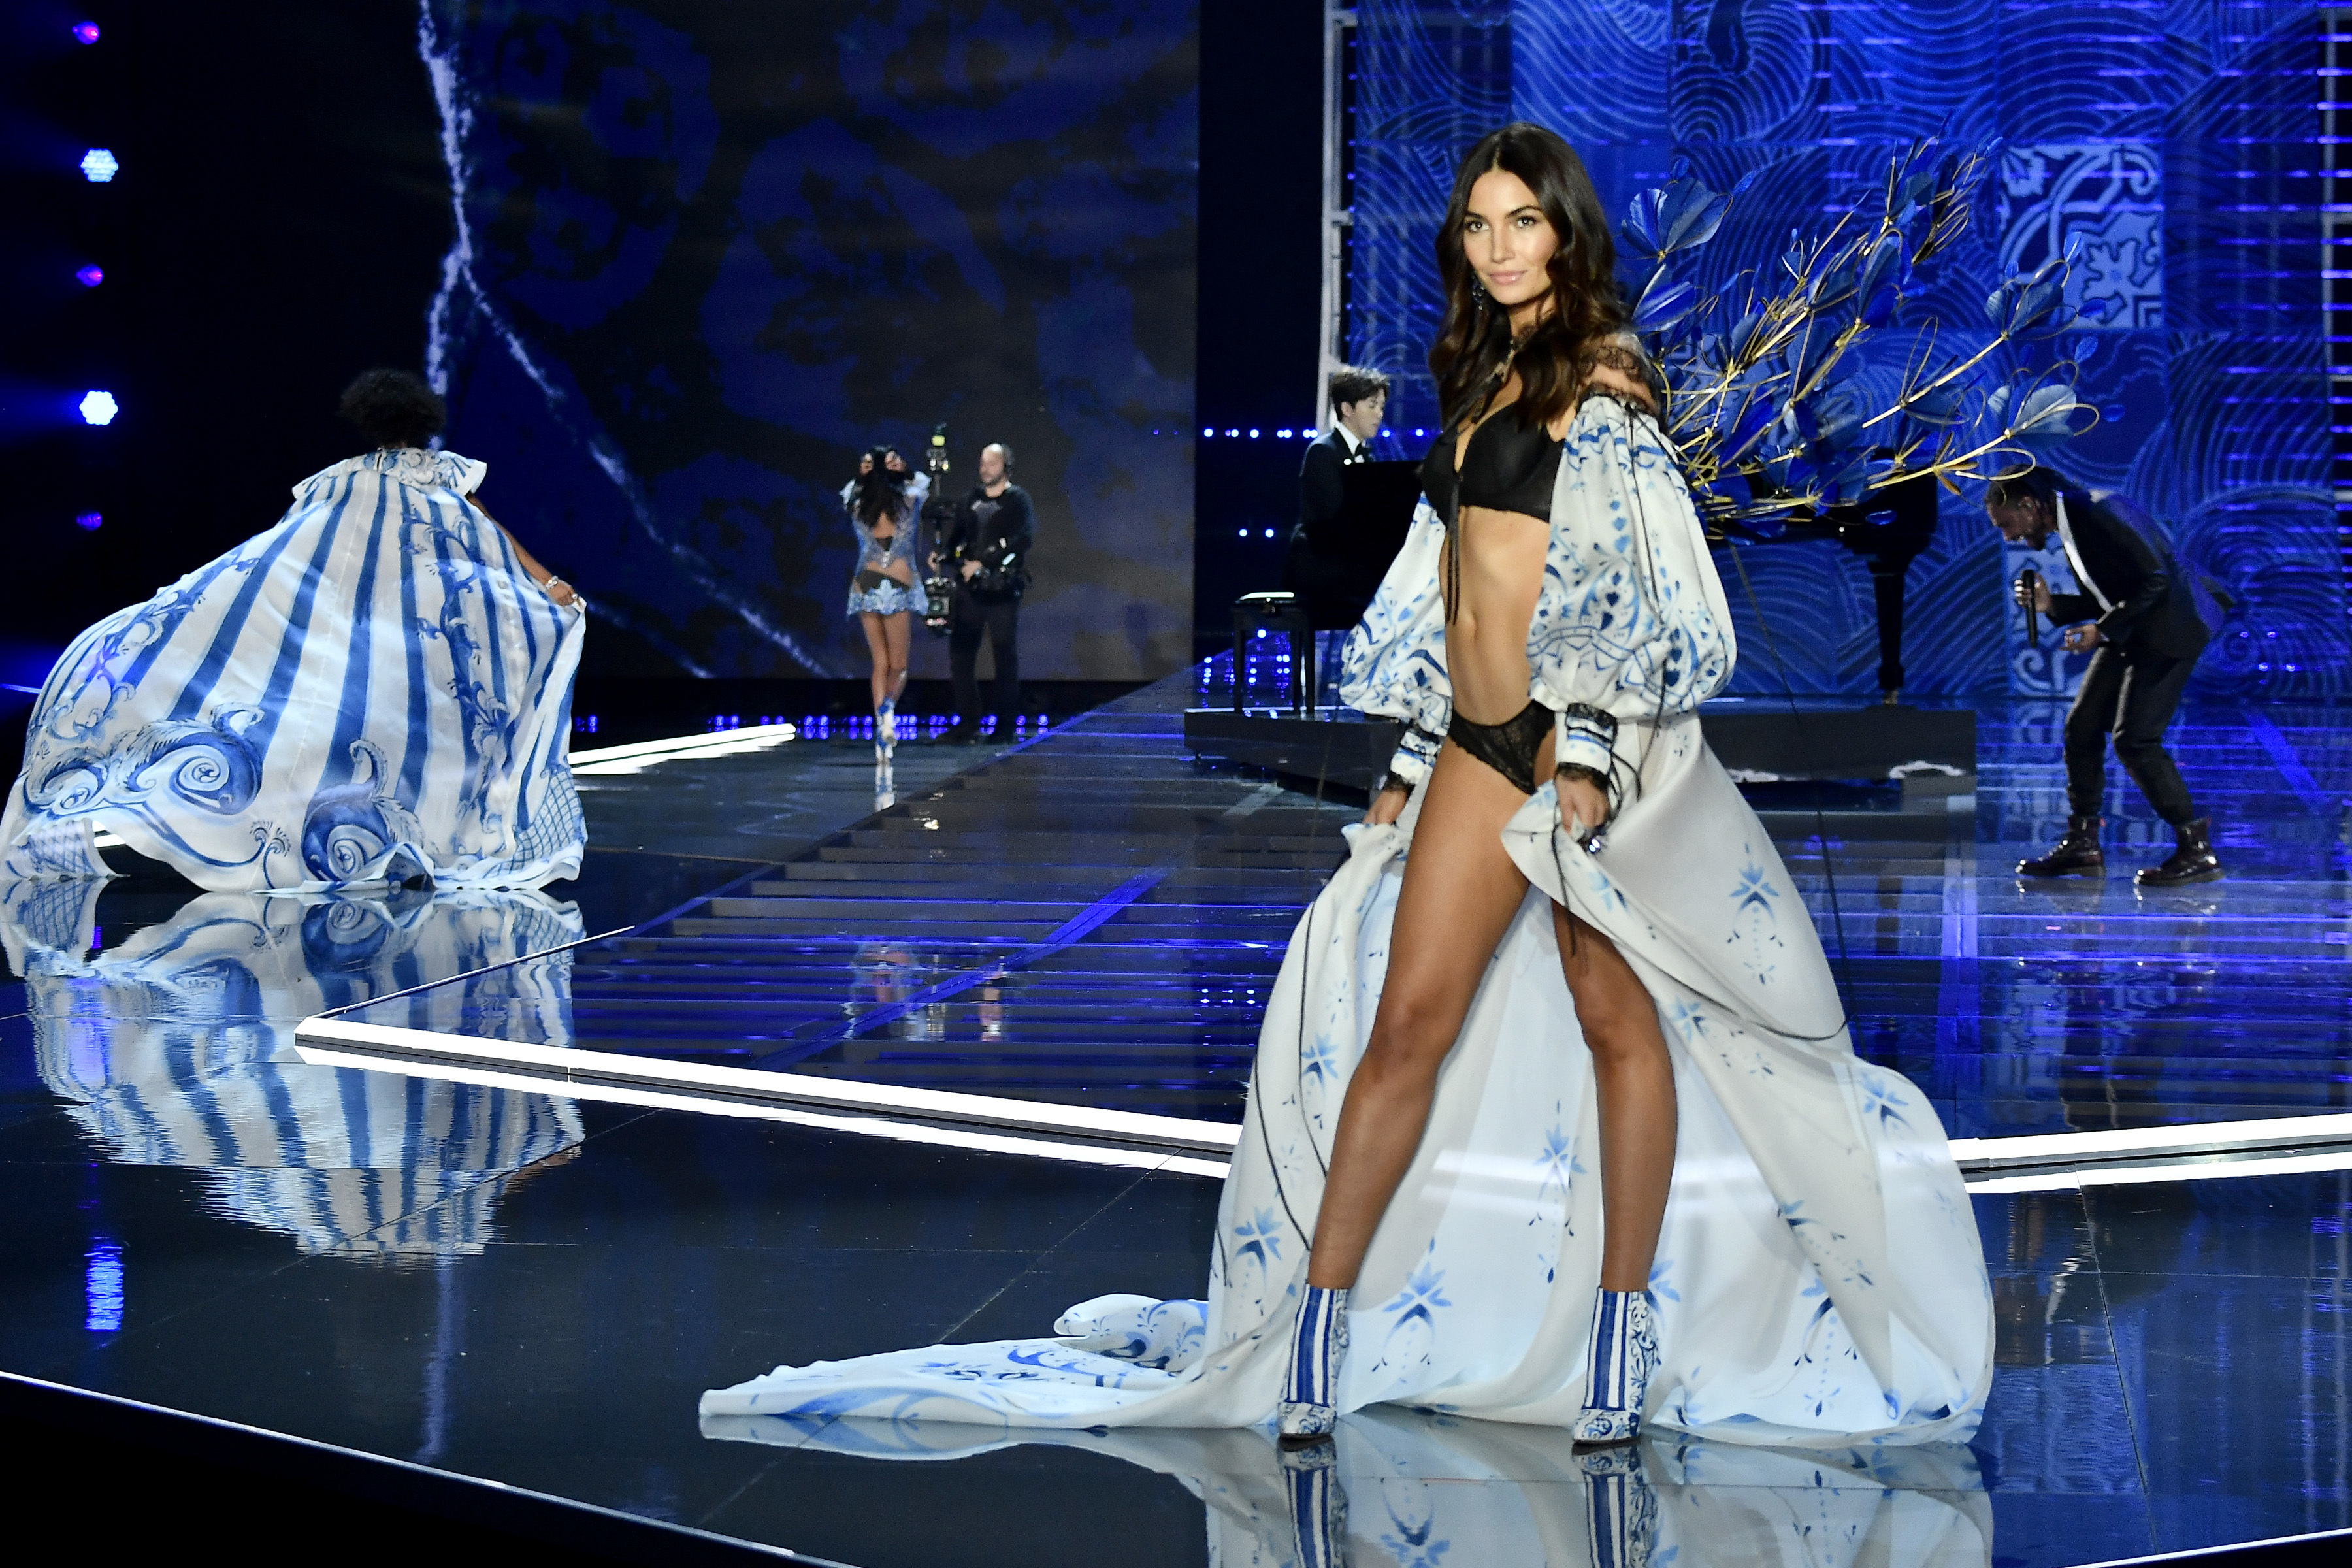 Lily Aldridge walks on the catwalk at the Victoria's Secret Fashion Show in Shanghai, China, on Nov. 20, 2017.